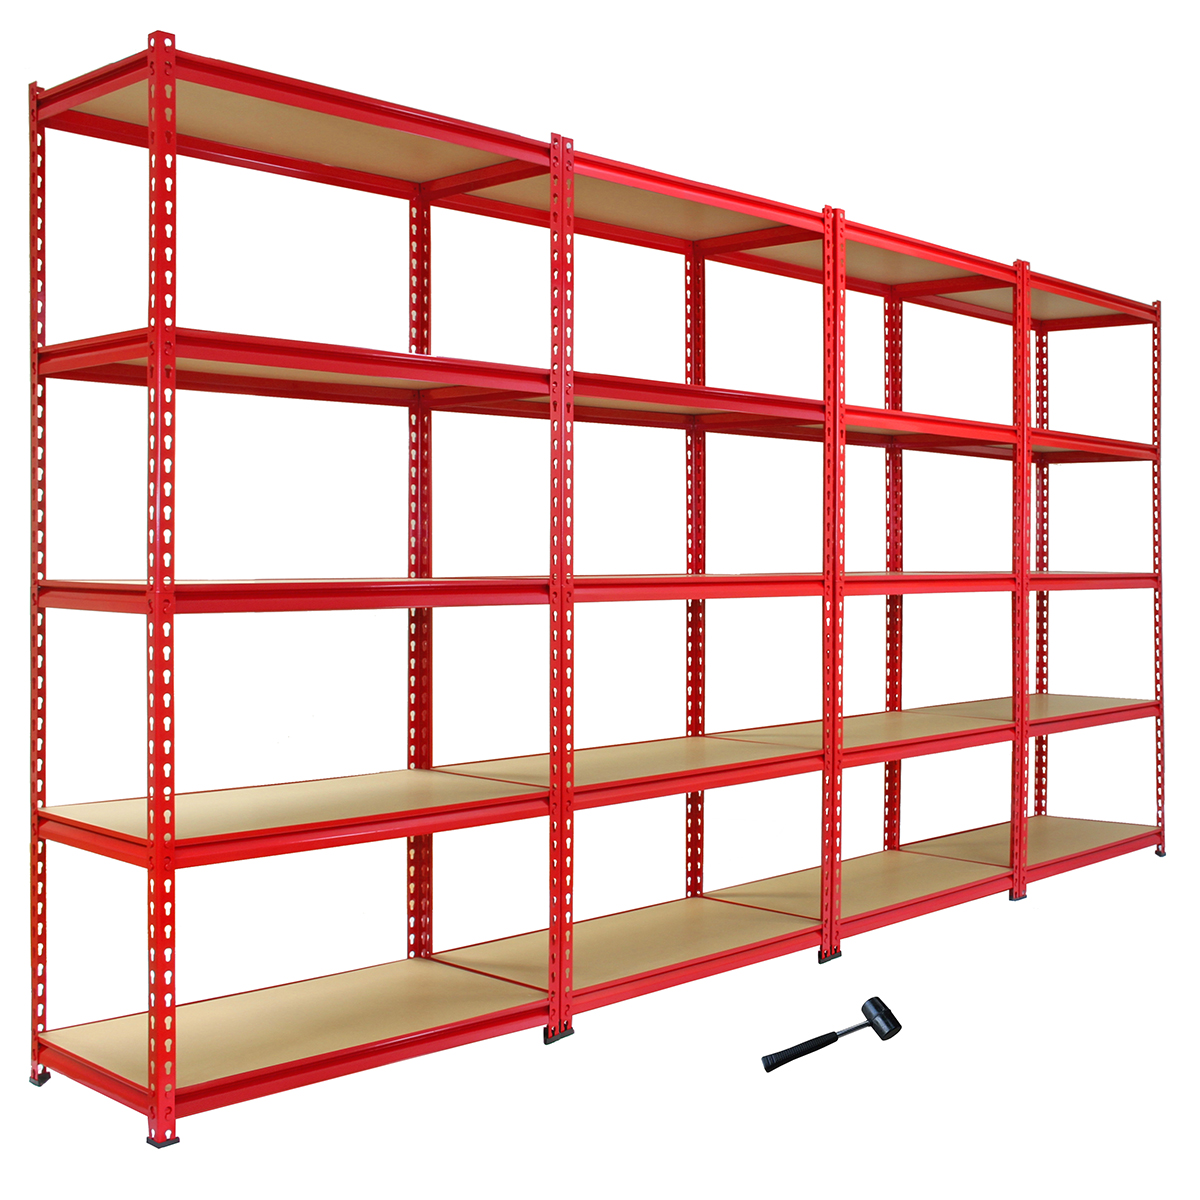 garage racking heavy duty shelving unit storage z racks shelves bays 5 tier 90cm ebay. Black Bedroom Furniture Sets. Home Design Ideas